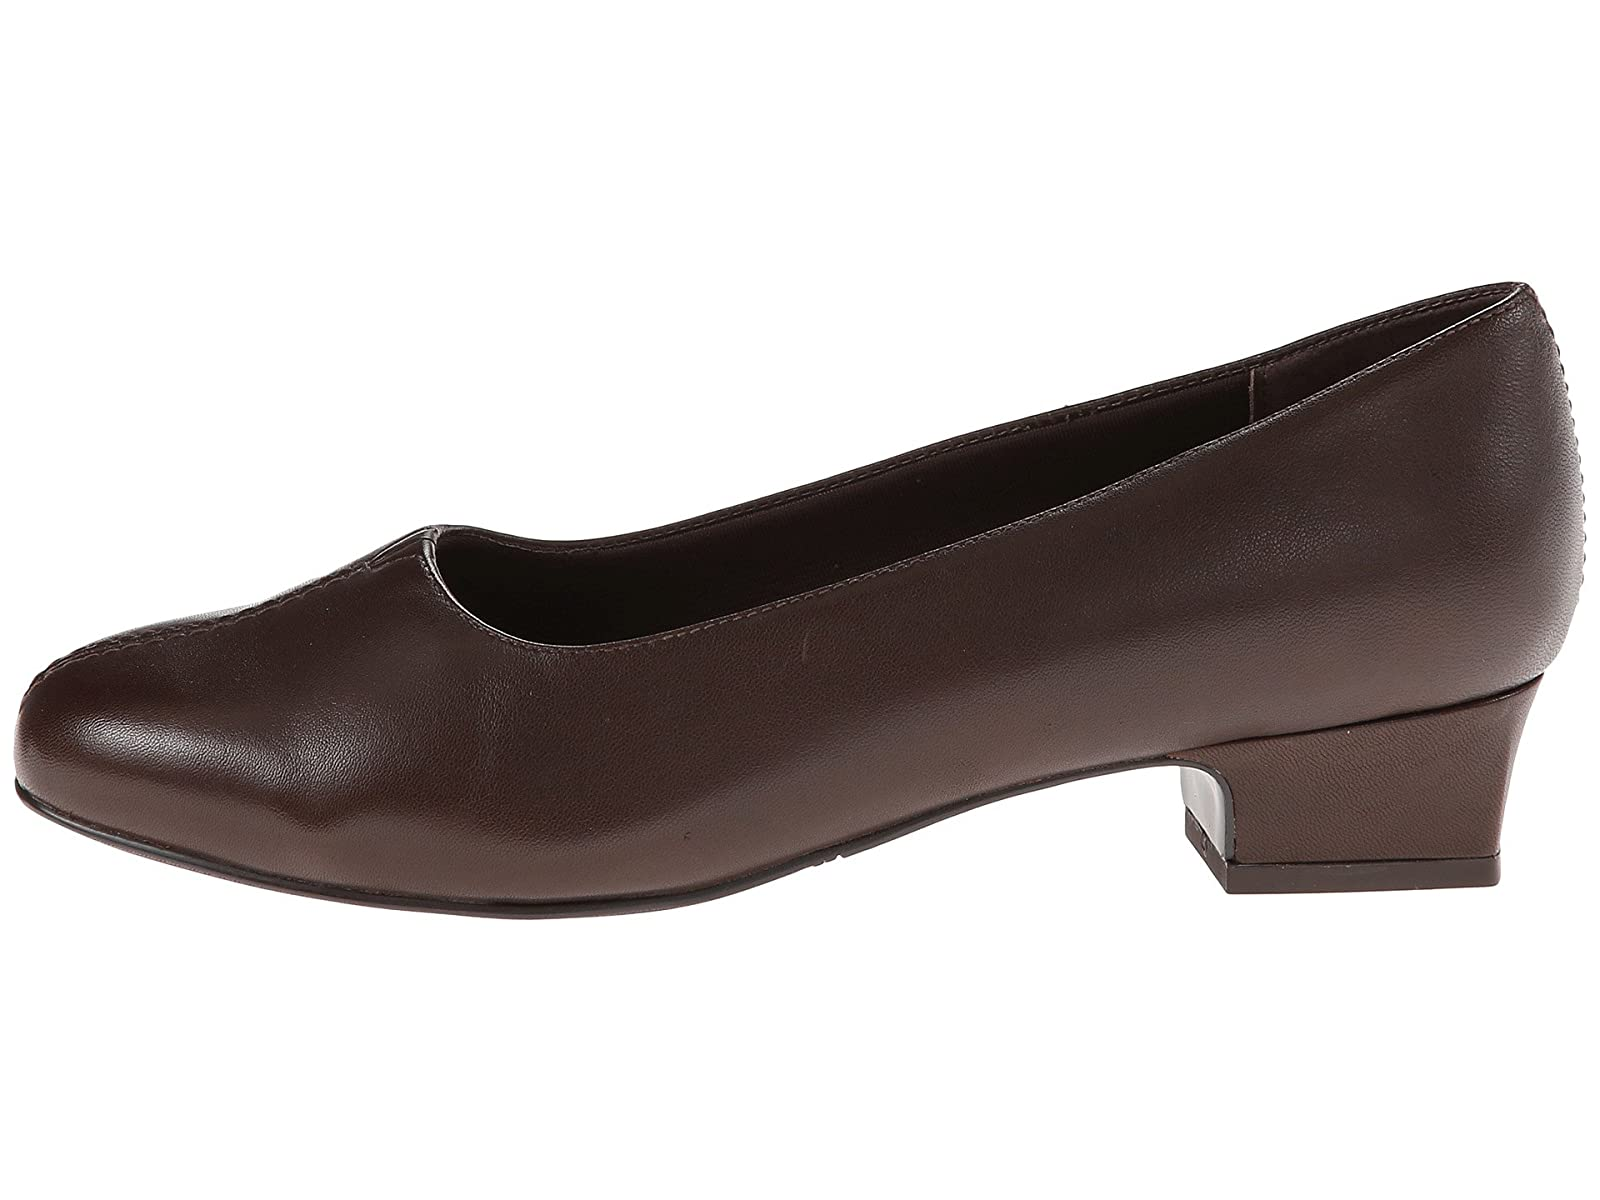 Man/Woman Trotters Doris  Buy now now now 6db882